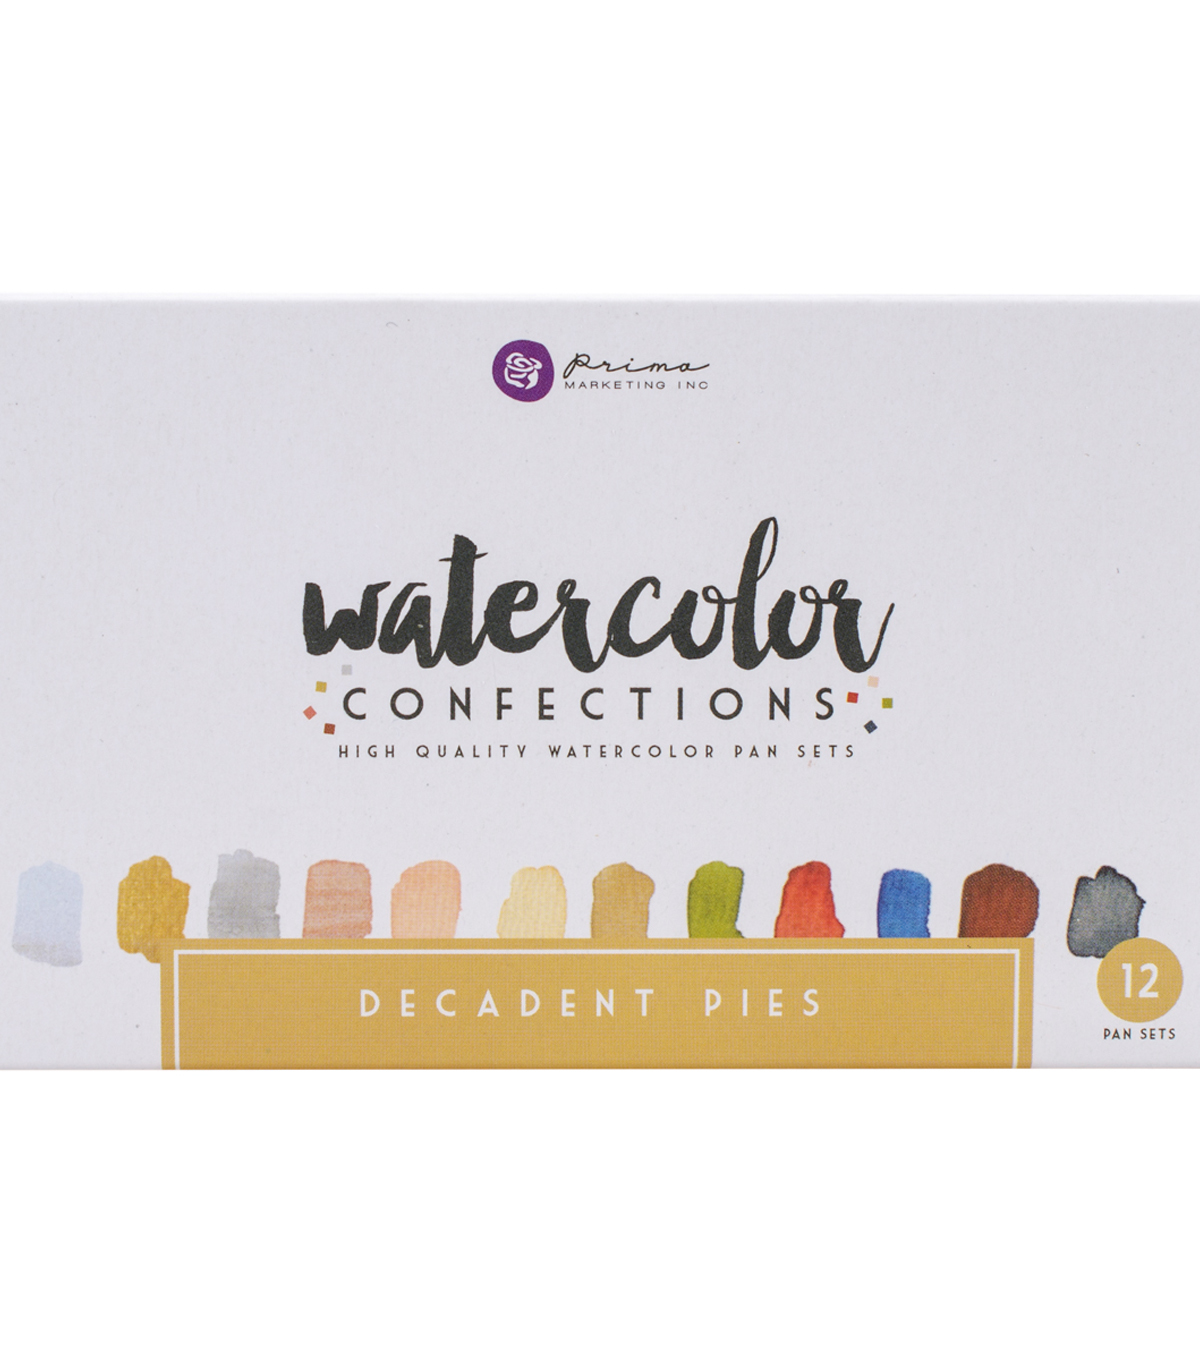 Decadent P-watercolor Confectns